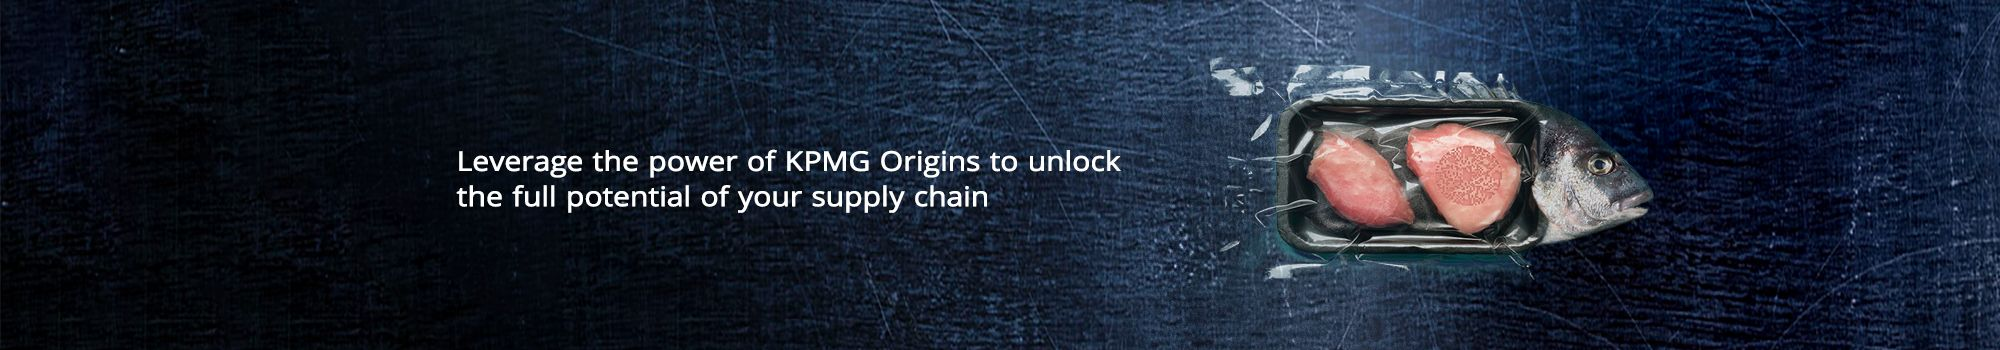 Leverage the power of KPMG Origins to unlock the full potential of your supply chain.